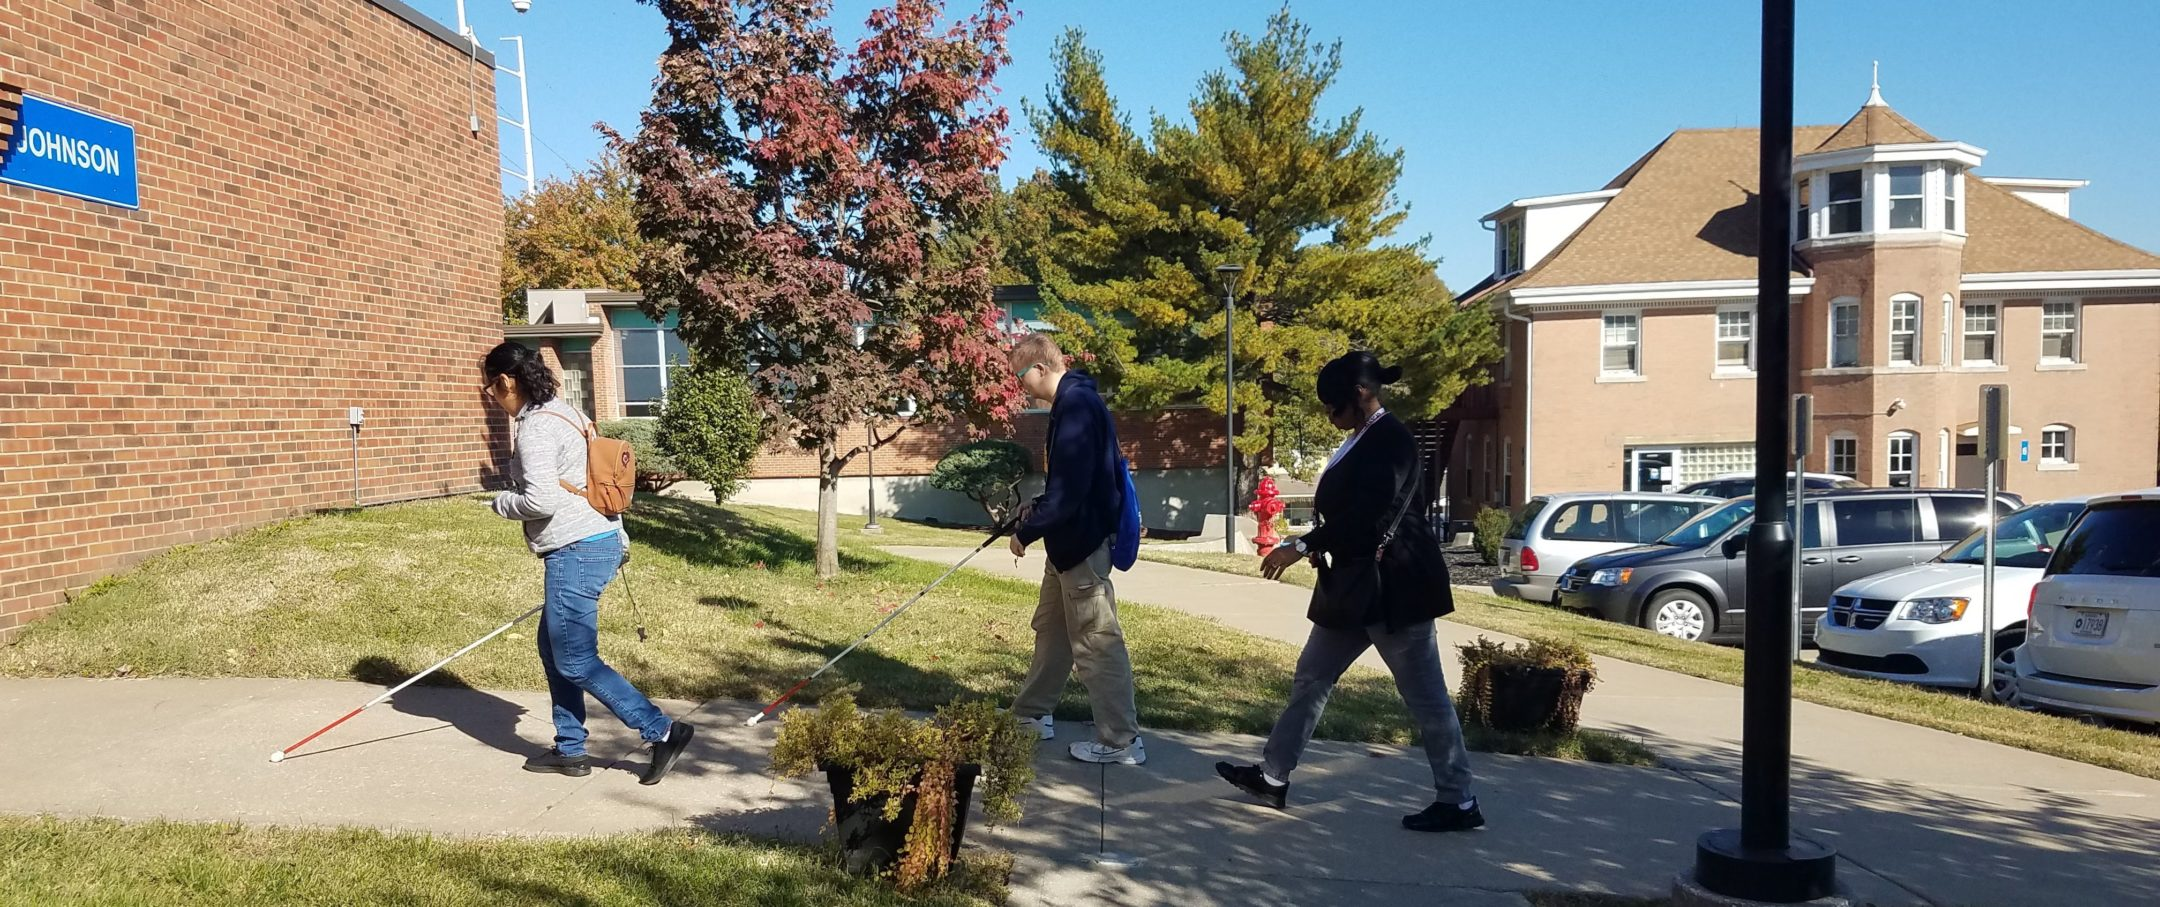 Three students walking on sidewalk with canes out front as they enter the Johnson Building. First female student wearing jeans and white shirt. The next two are males wearing coat jacket and kaki pants.